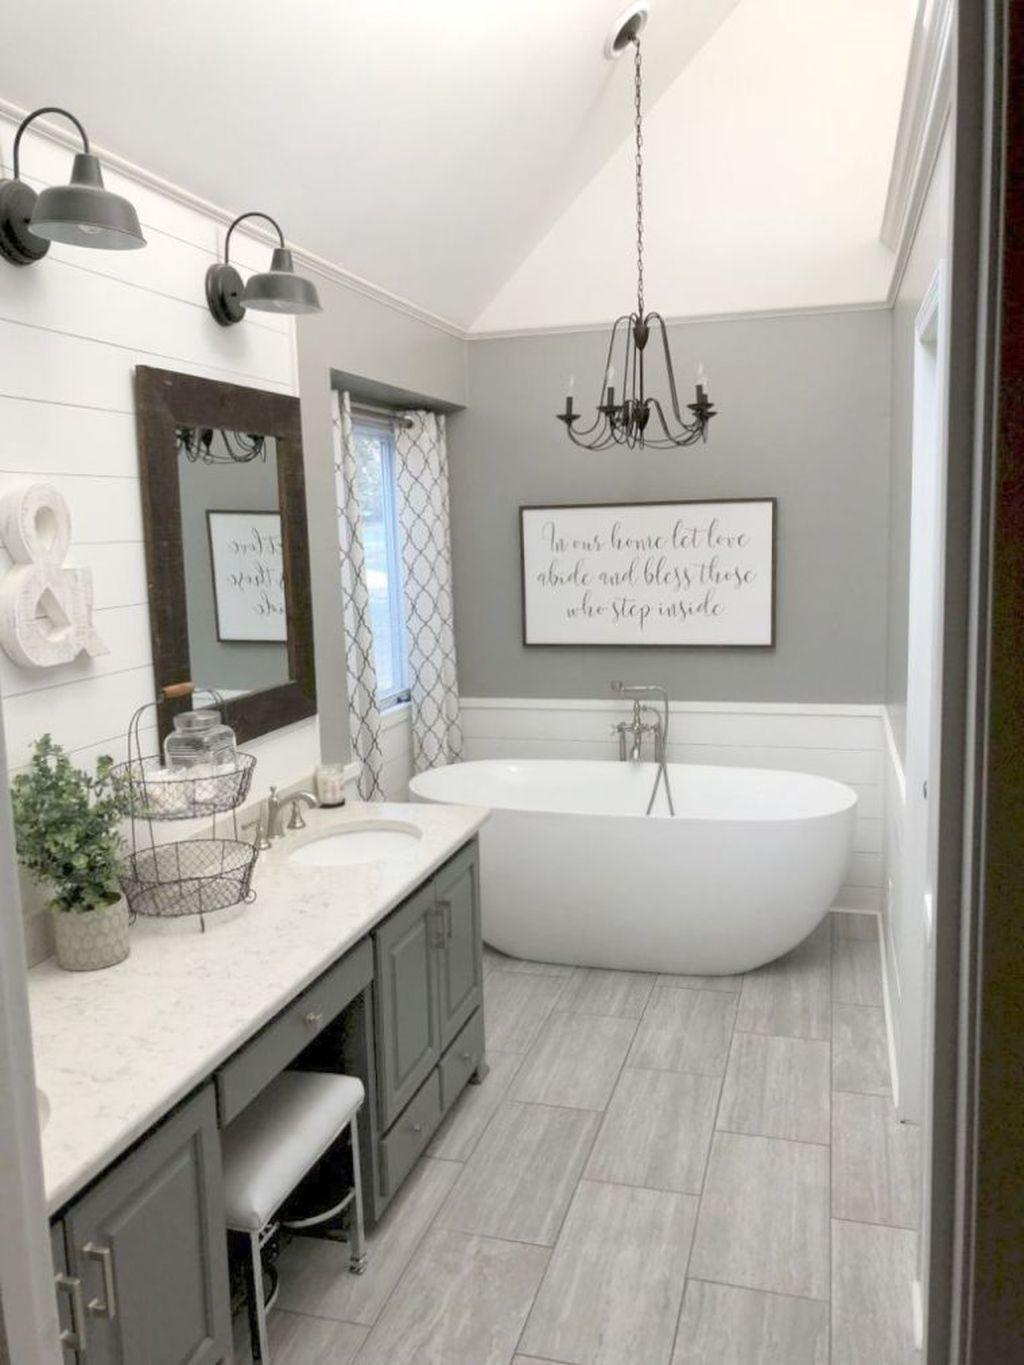 Inspiring Drywall Design Ideas To Beautify Your Interior 01